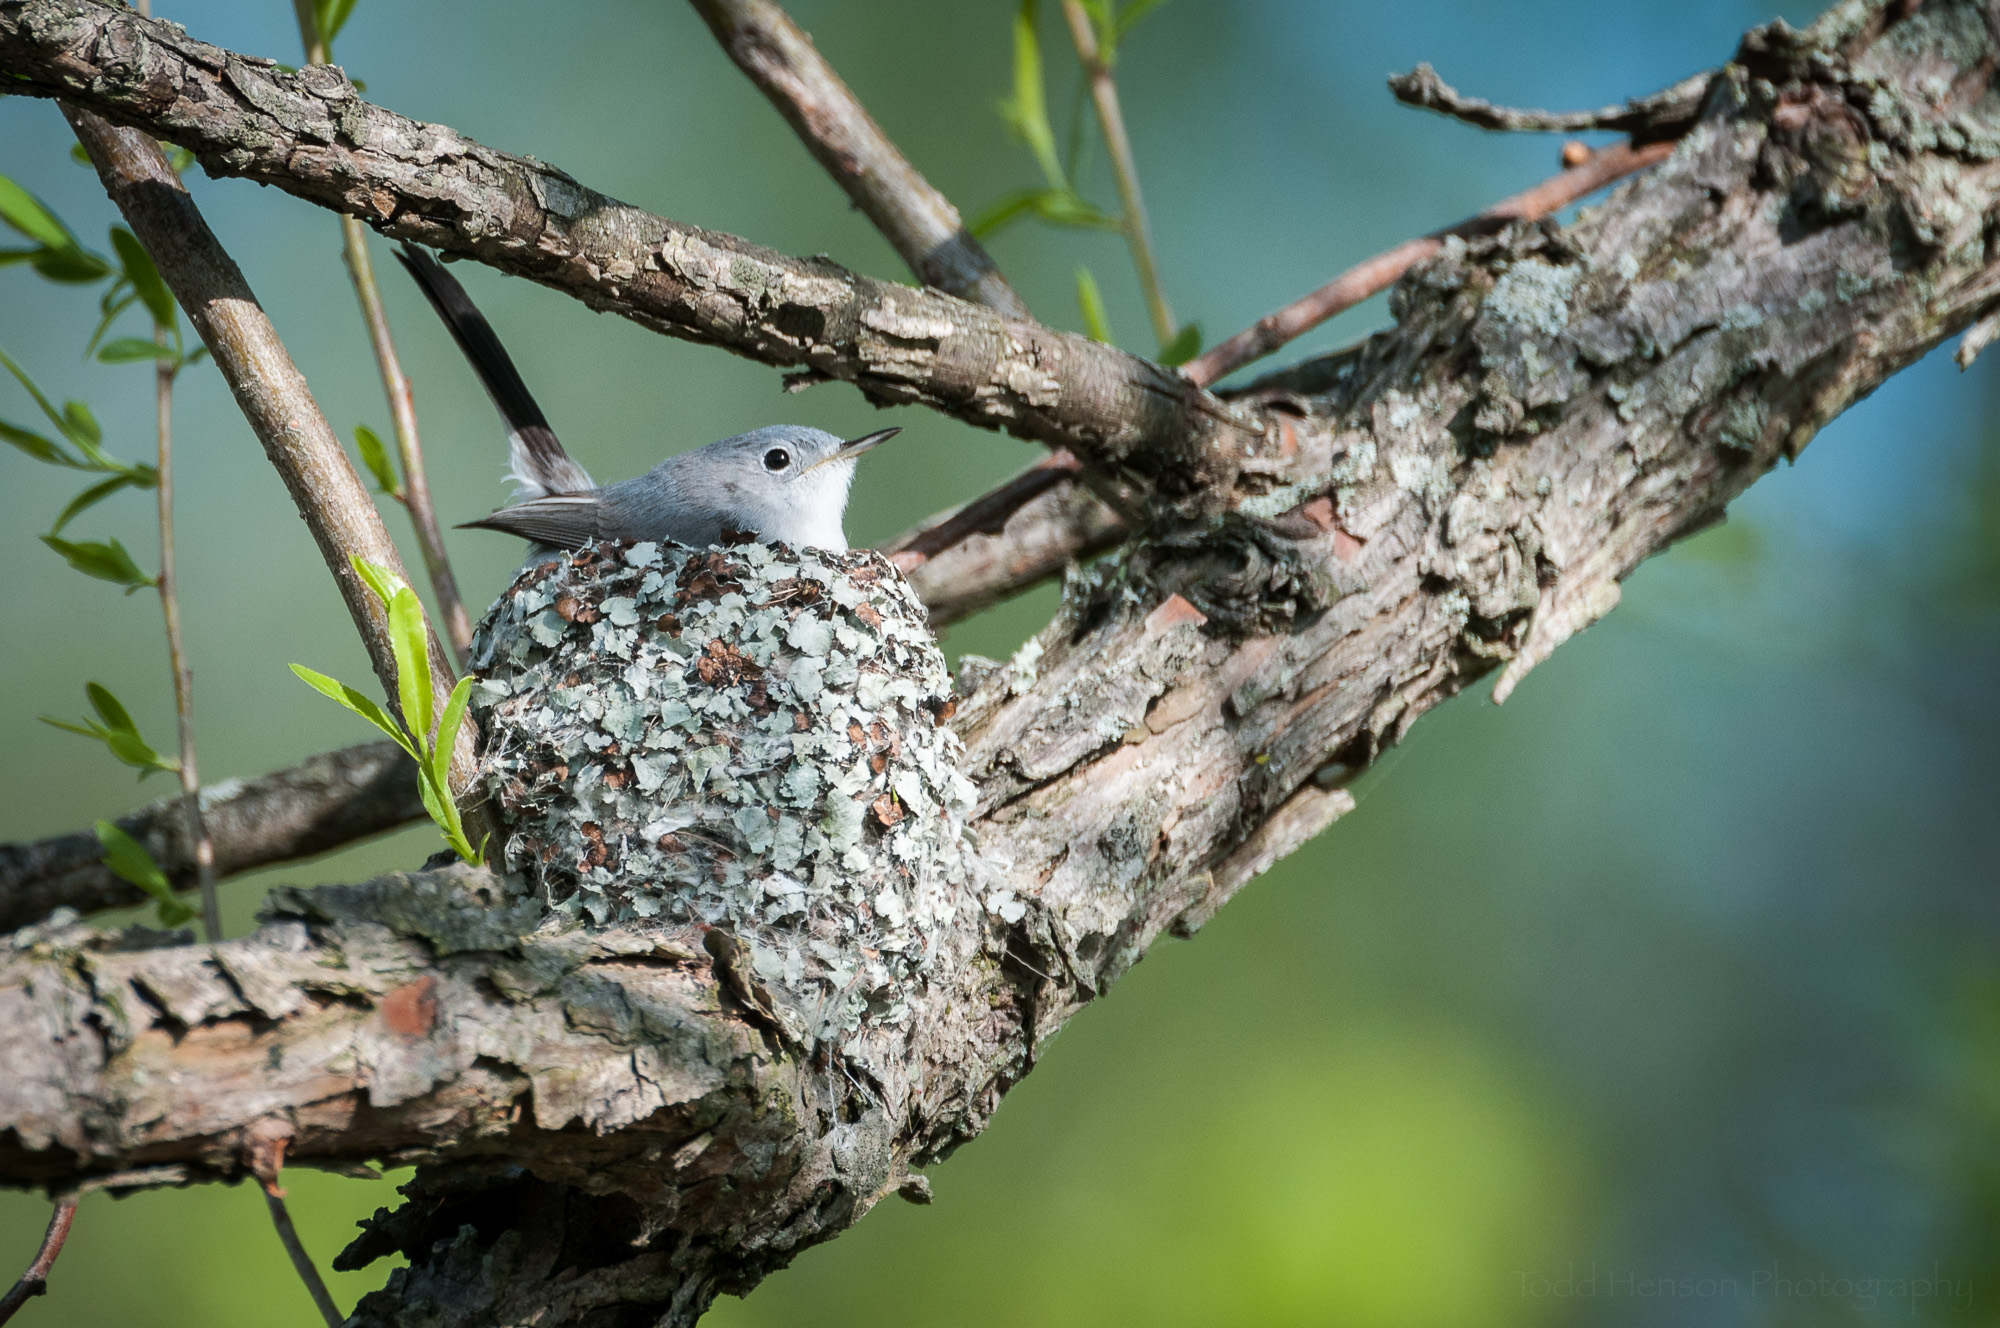 Blue-gray Gnatcatcher building a nest. Keep a respectful distance when photographing or observing nesting behavior. Don't stay at the site very long. Don't disturb anything.